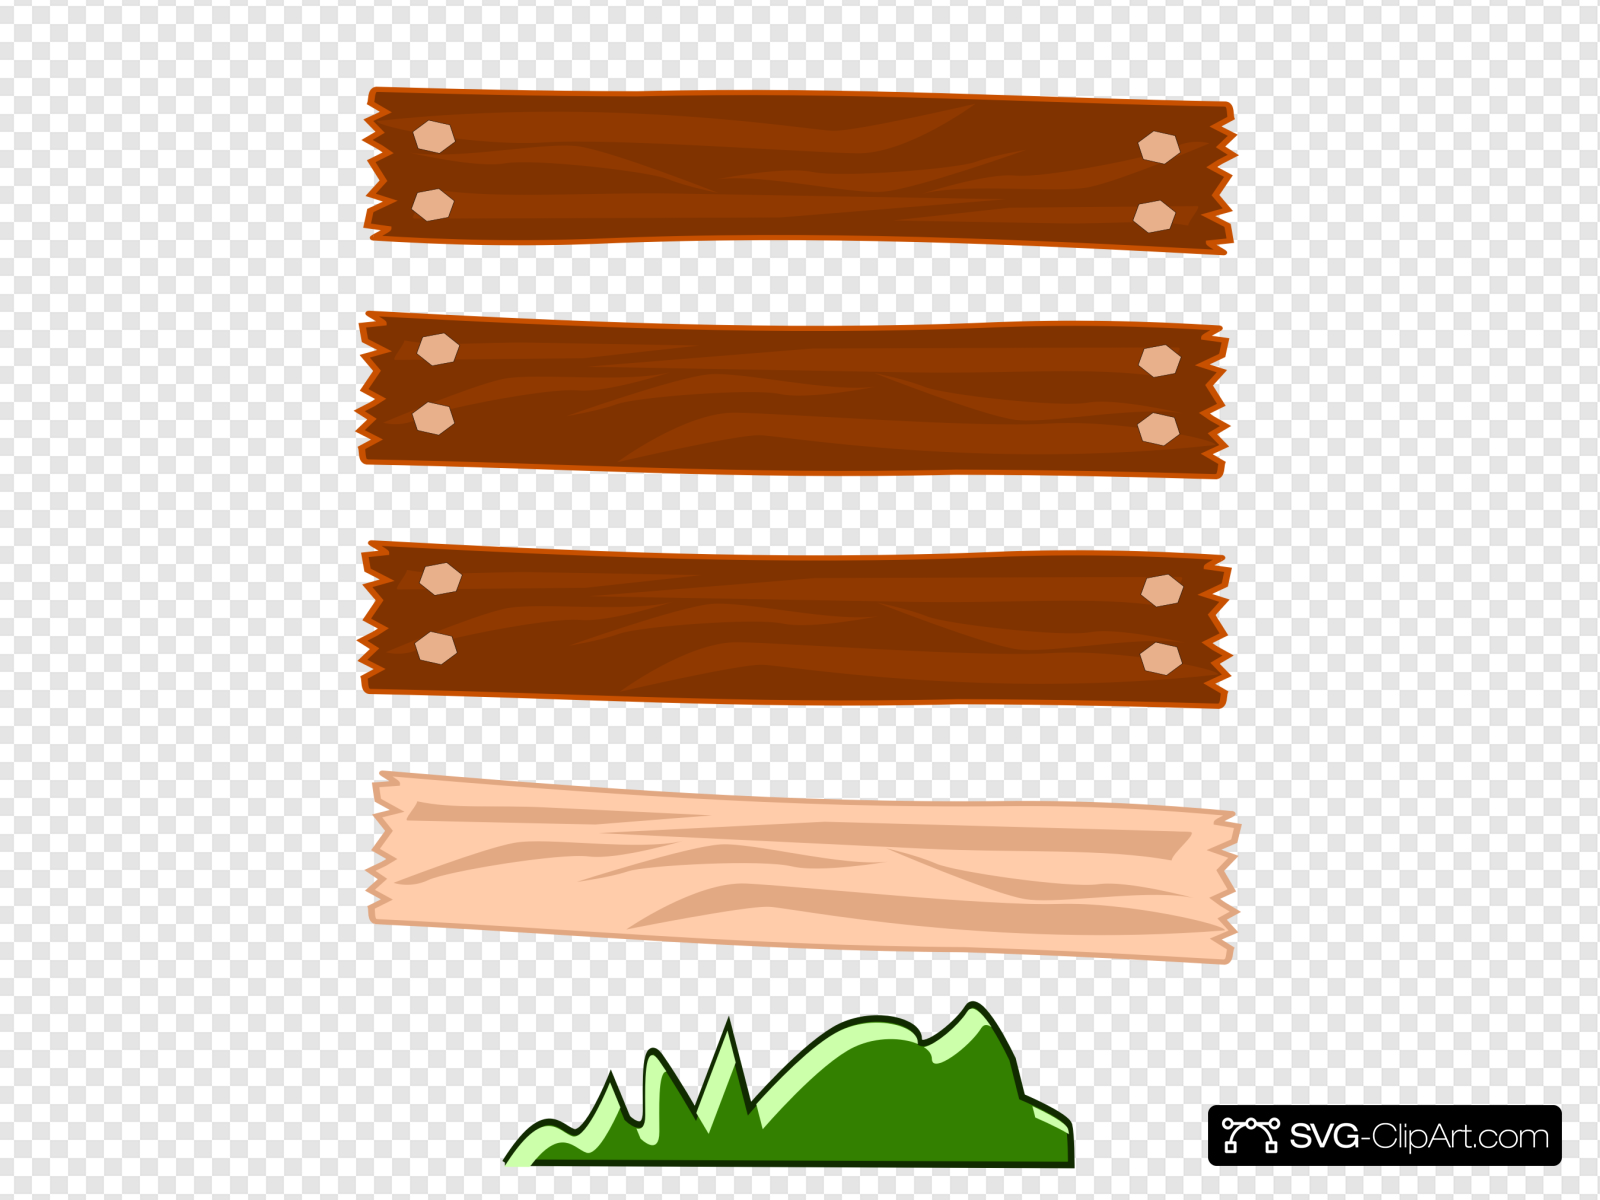 Wood Street Sign Clip art, Icon and SVG.